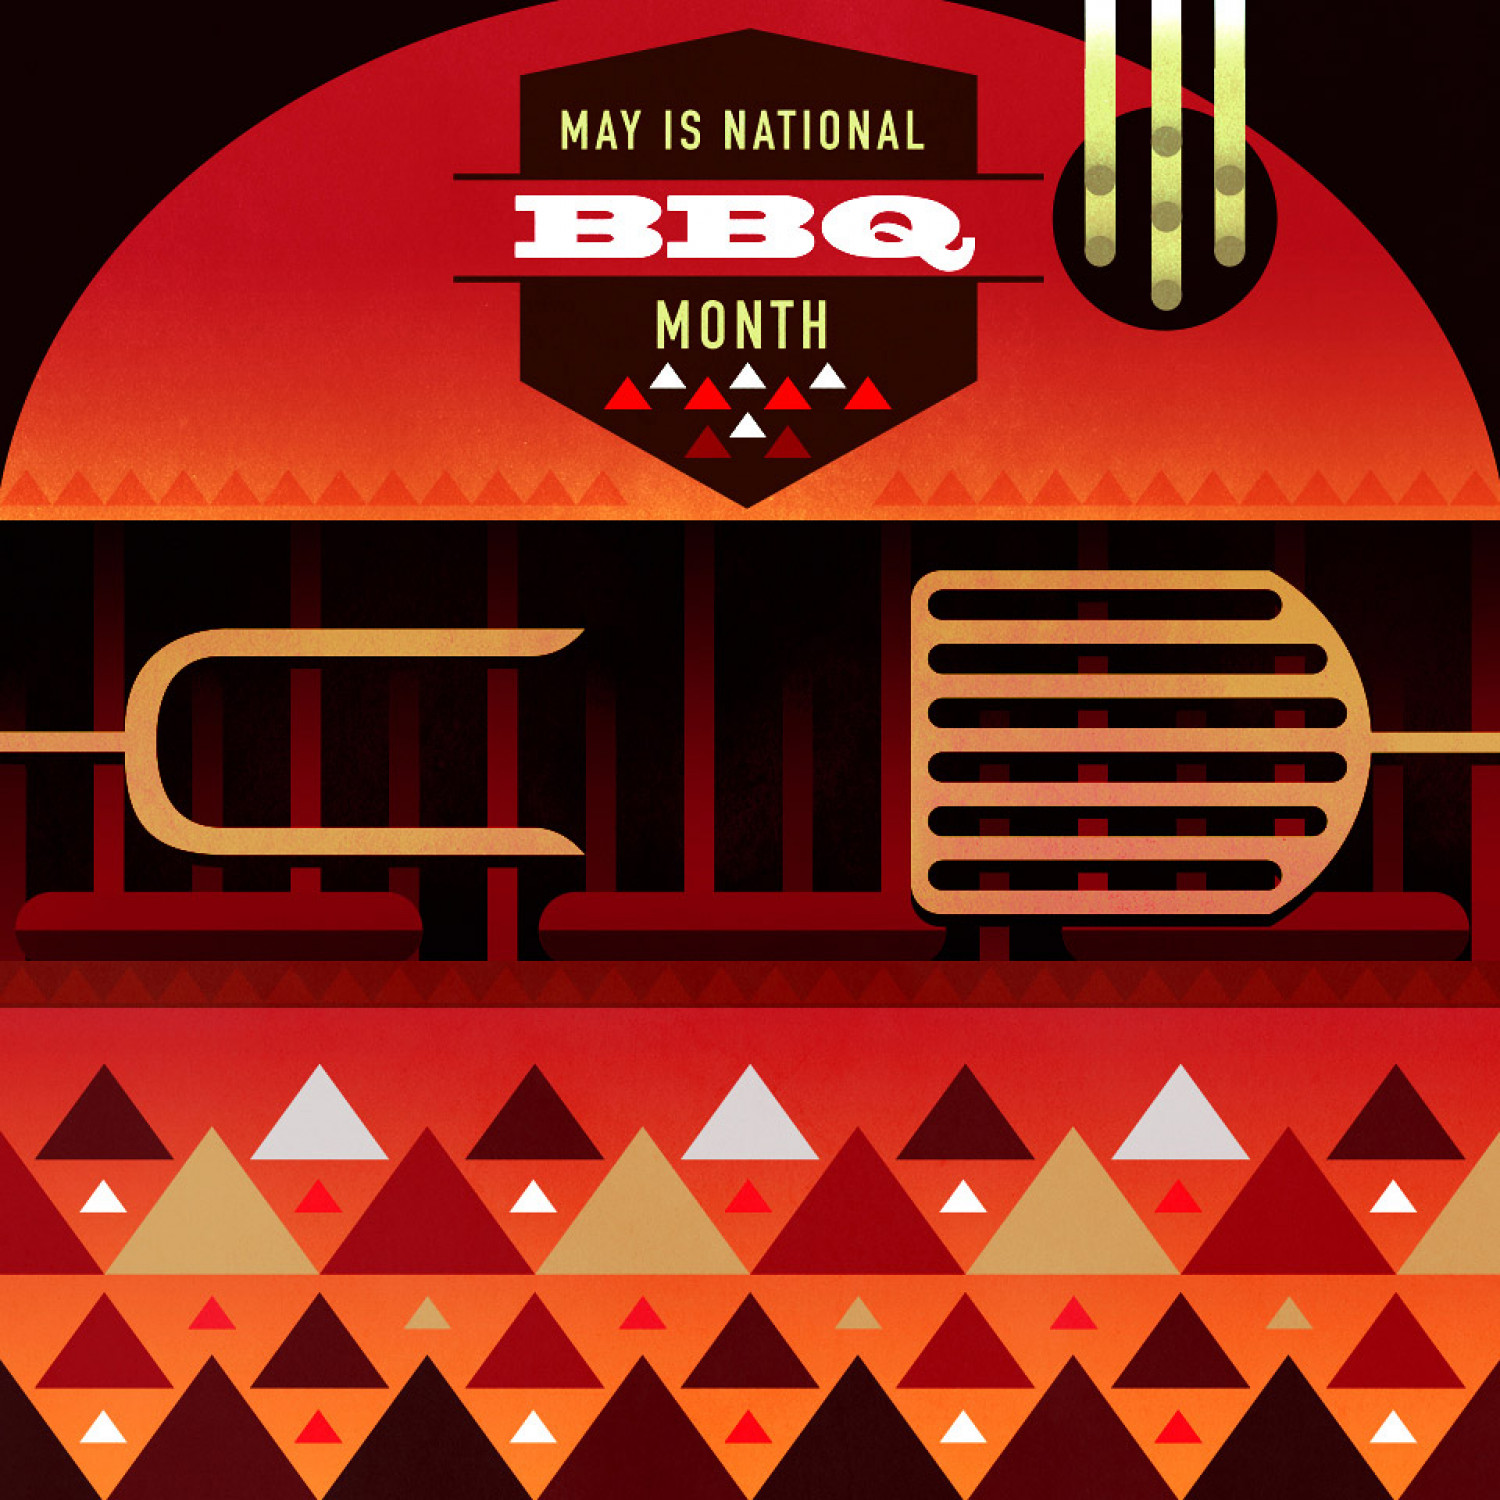 May is National BBQ Month Infographic